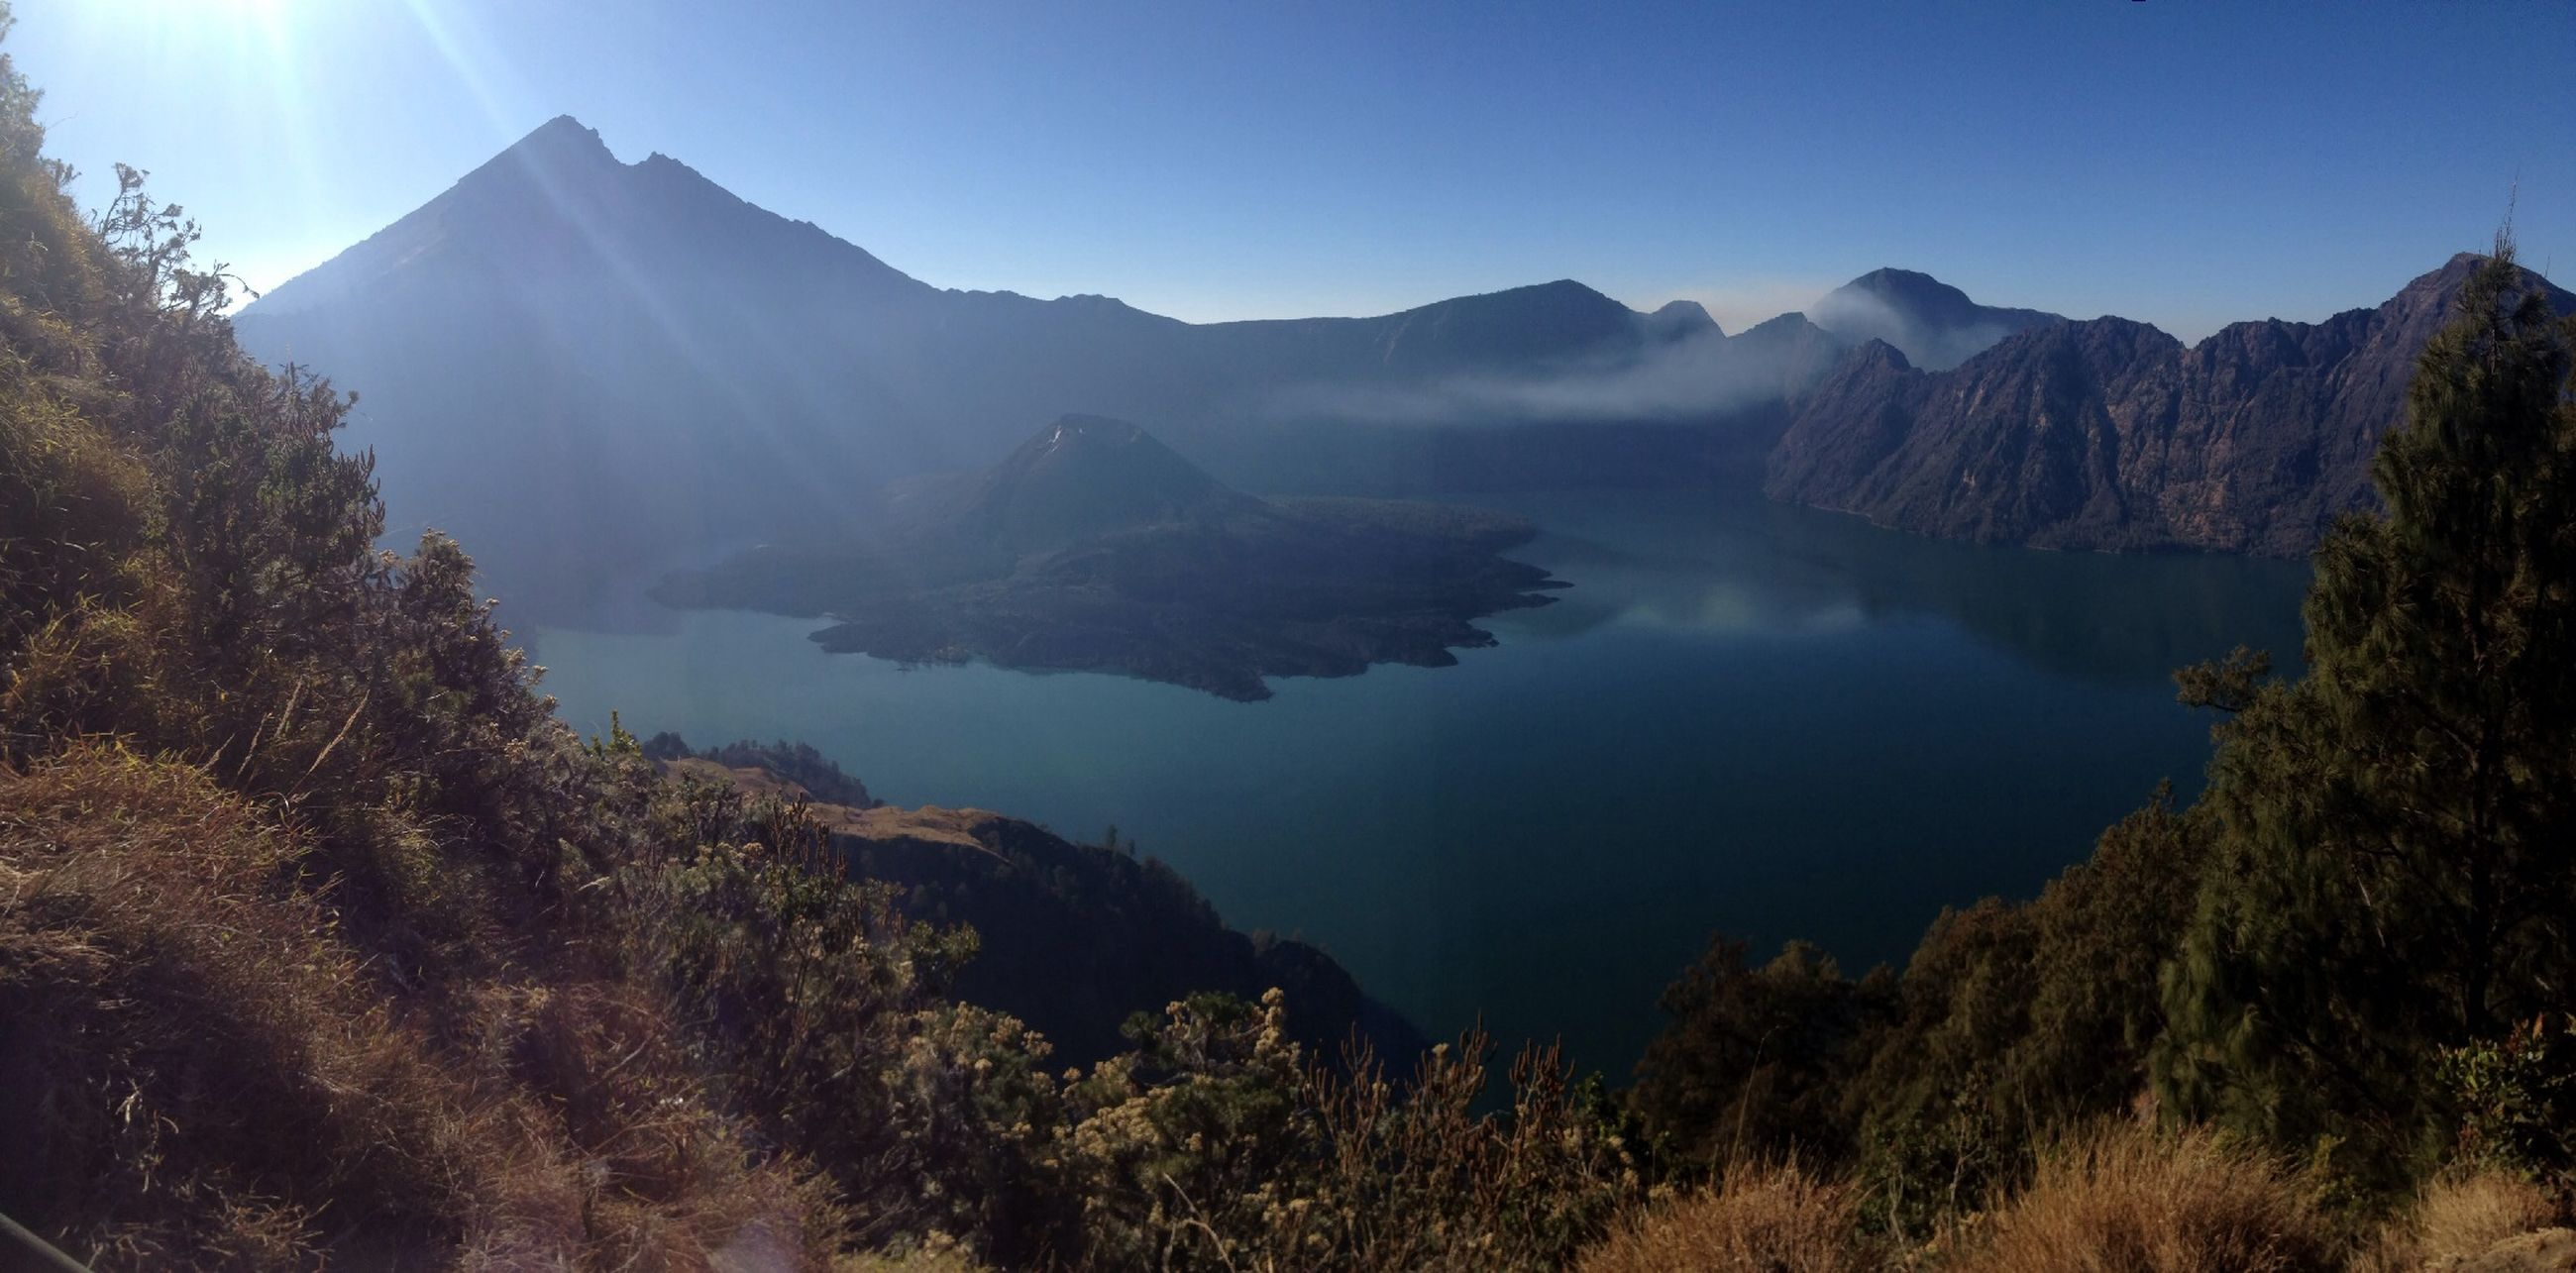 mountain, tranquil scene, tranquility, scenics, beauty in nature, mountain range, water, nature, lake, reflection, sunlight, landscape, idyllic, clear sky, non-urban scene, tree, sky, majestic, physical geography, sun